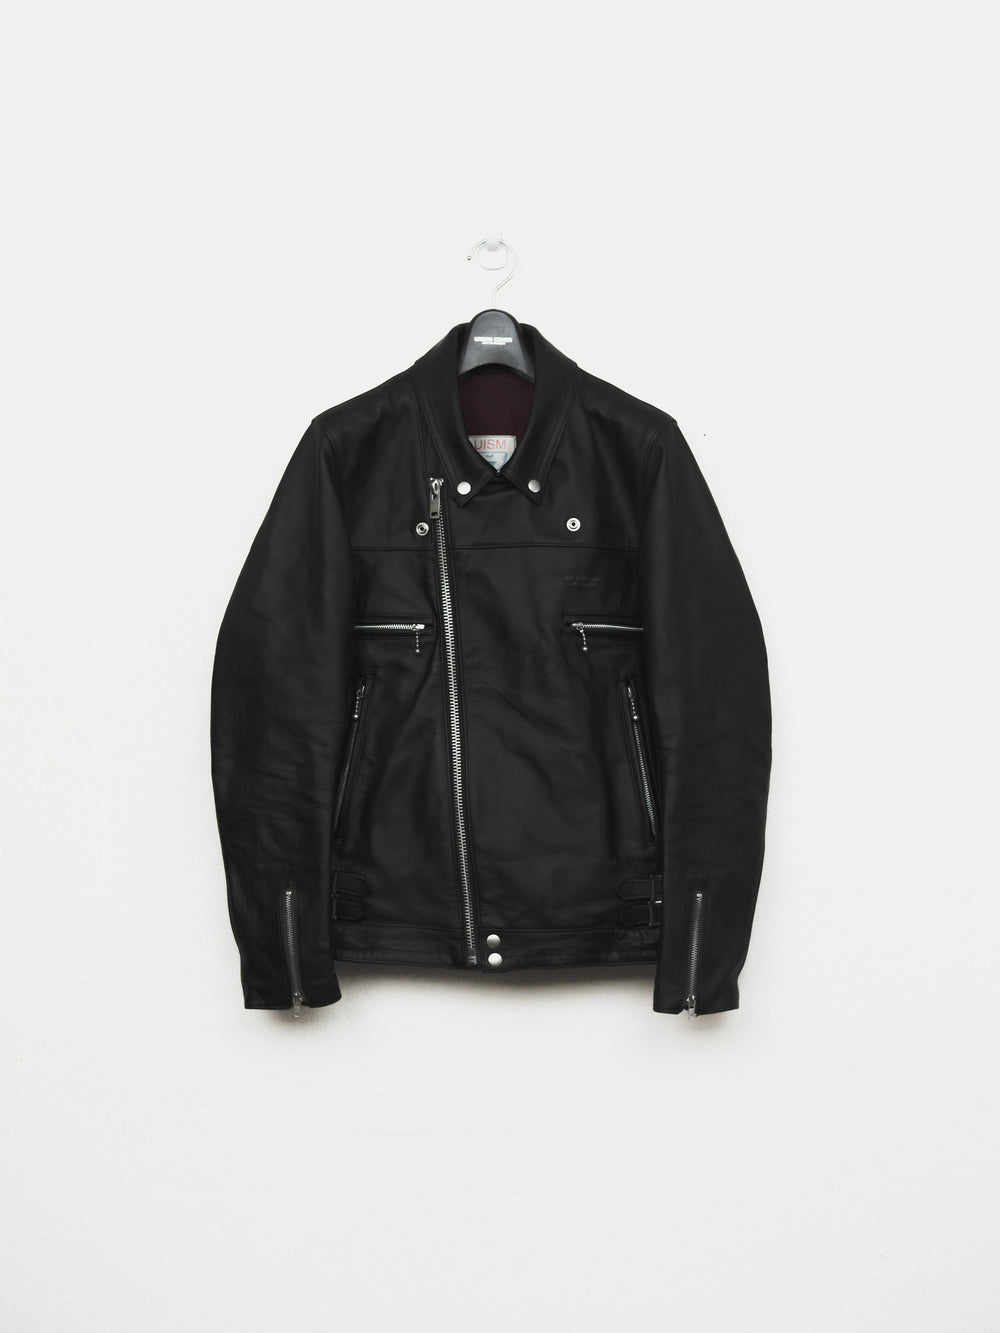 Undercover SS15 WMNNC Double Rider